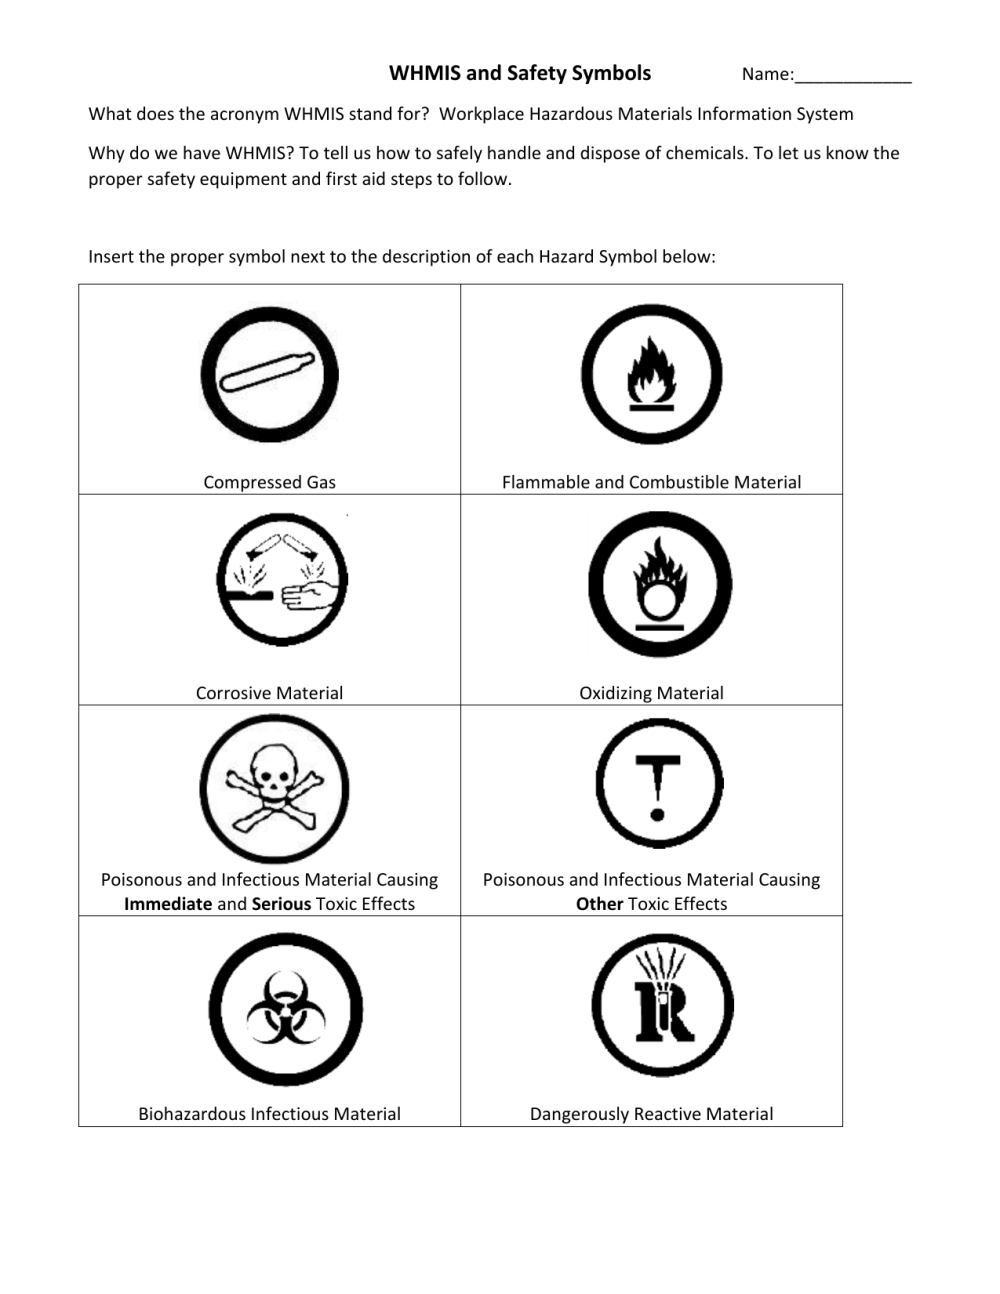 medium resolution of 2-WHMIS and Safety Symbols Complete